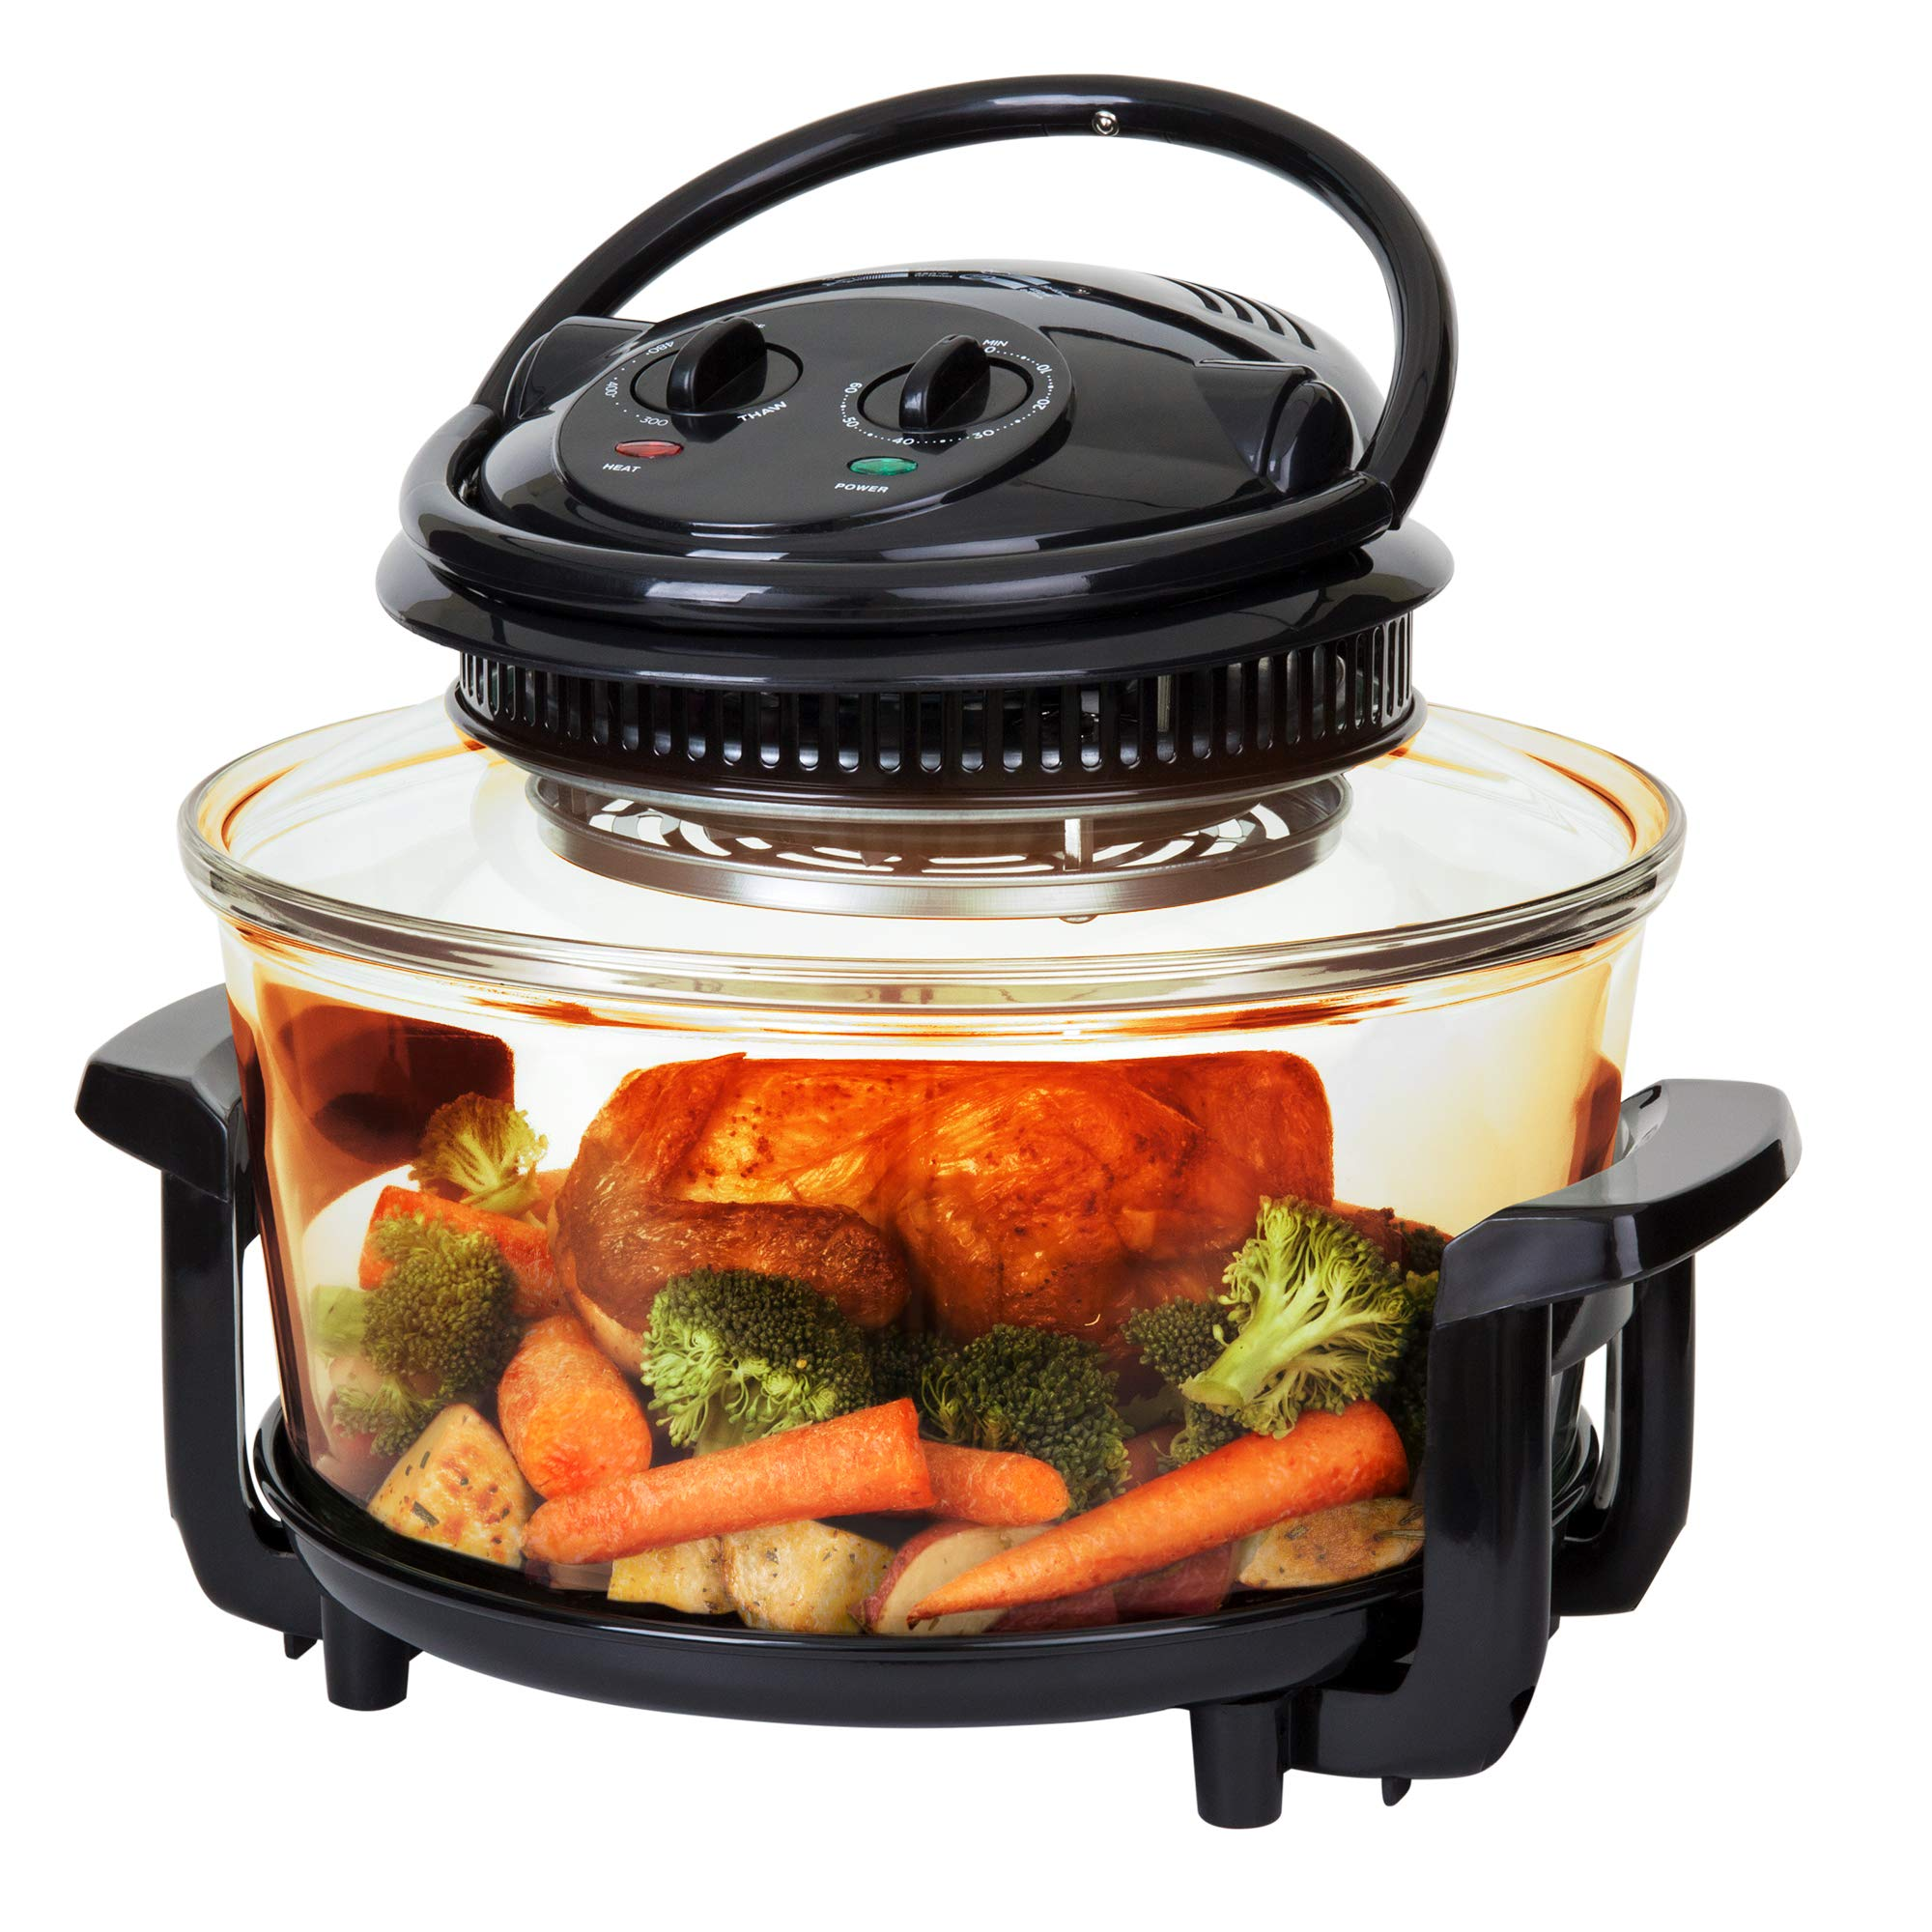 Best Choice Products 12L Electric Convection Glass Halogen Oven for Baking, Roasting, Steaming, Grilling with Air Fryer Capabilities, Temperature and Time Dials, Automatic Shutoff, 2 Wire Racks, Tongs